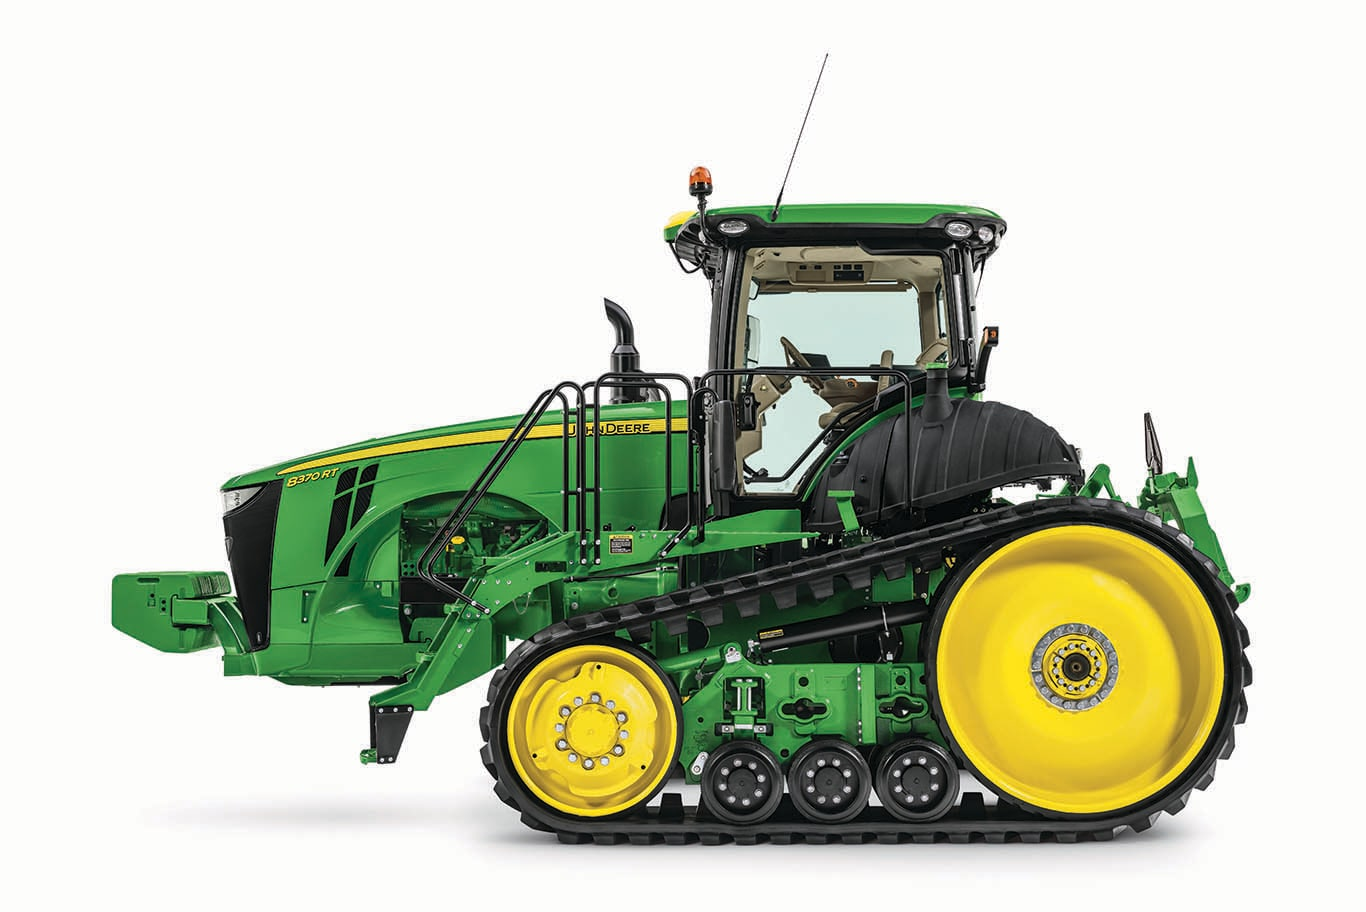 Image of an 8370RT Tractor